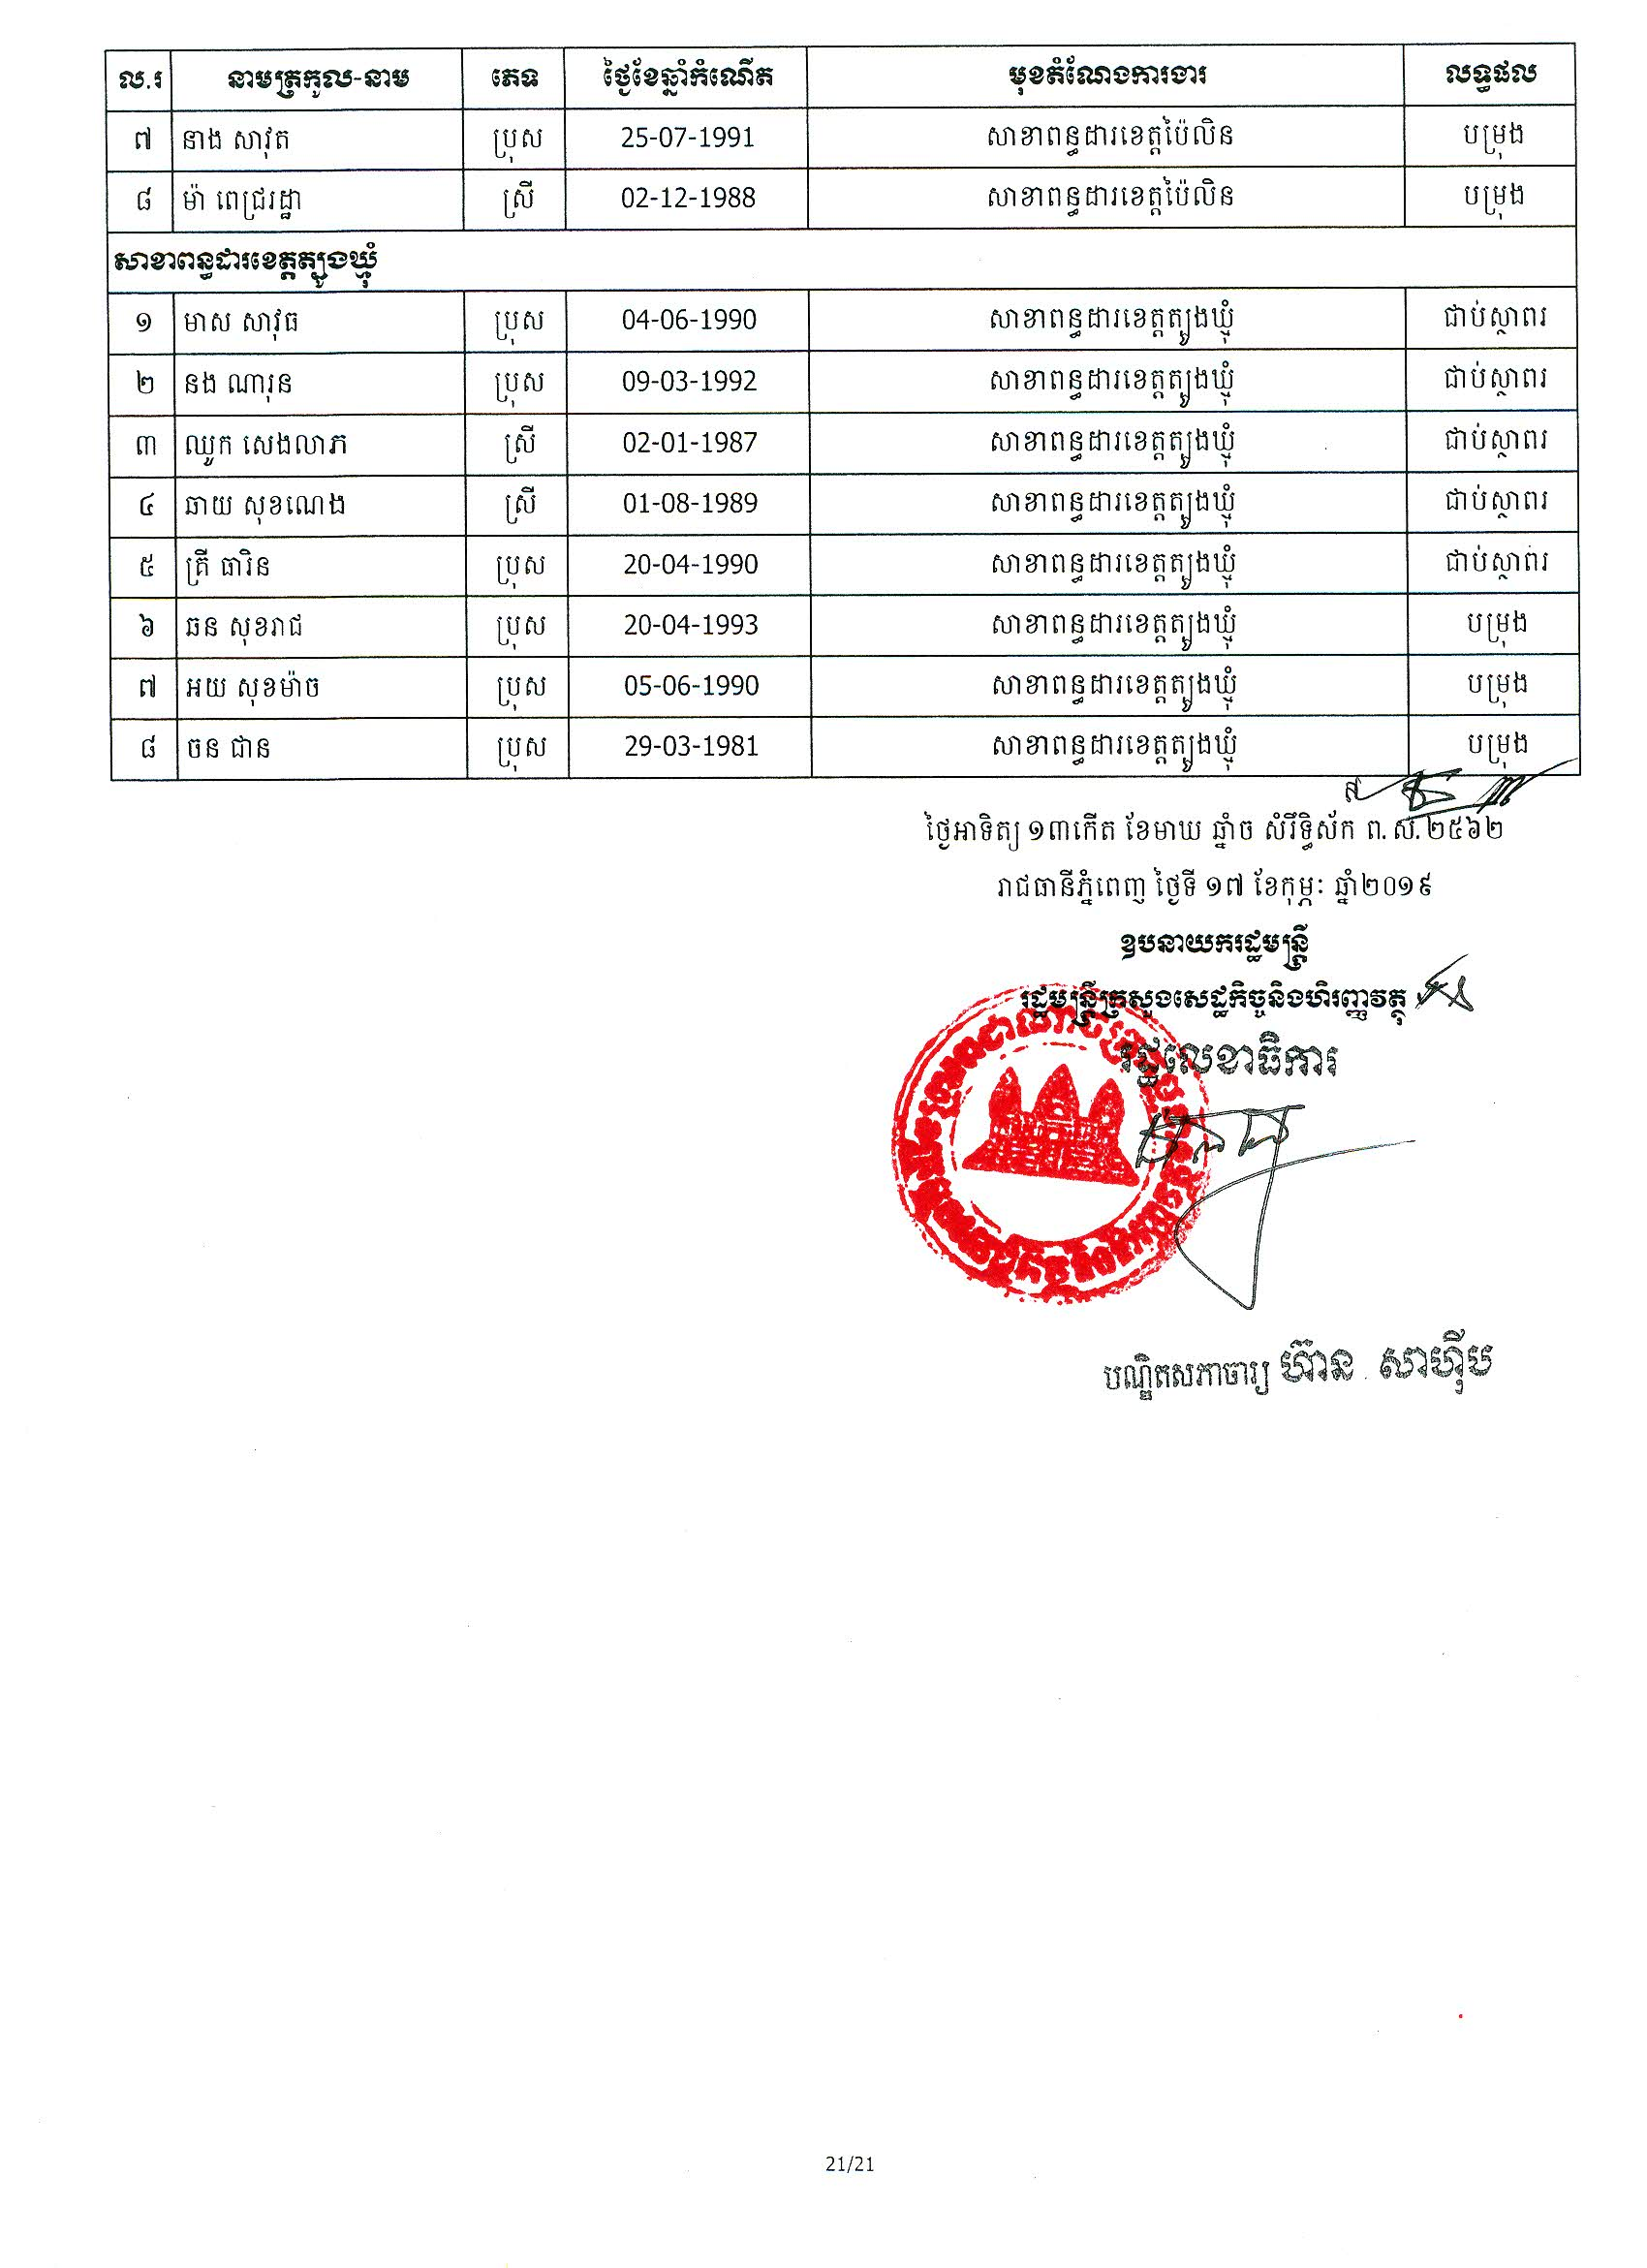 Result of GDT Examiniation_Page_21